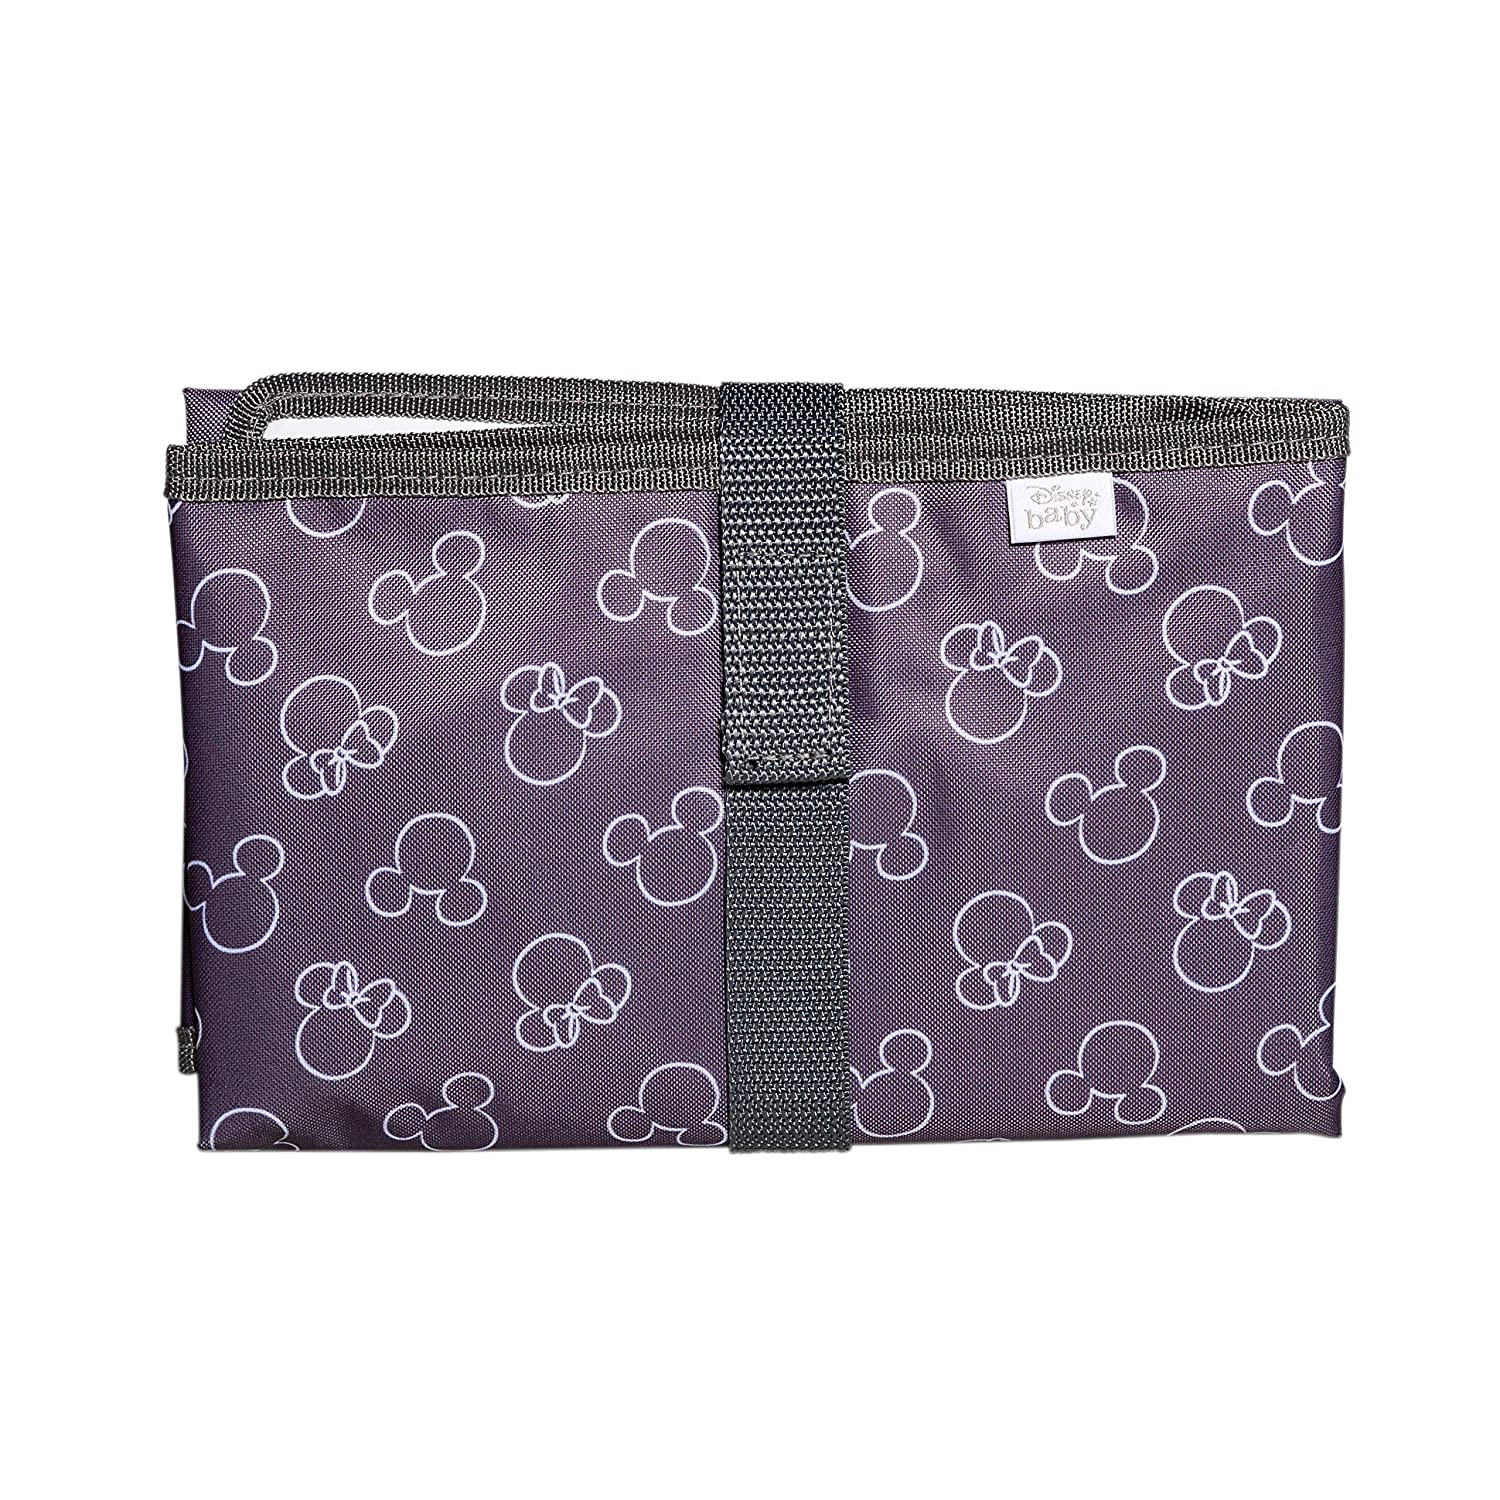 Childress Disney Baby Full Body Portable Changing Pad for Baby Mickey Black J.L